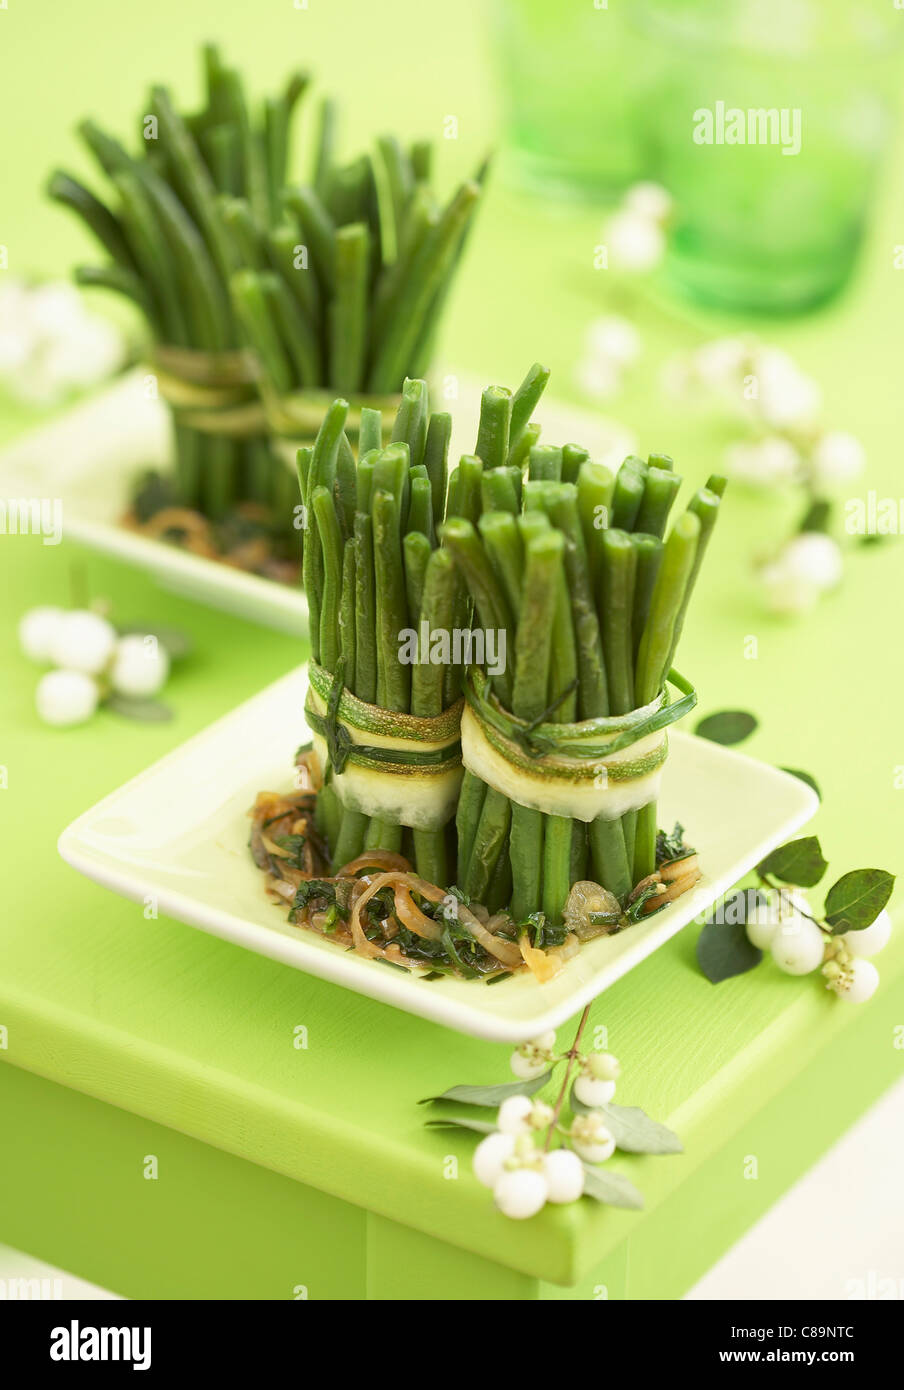 Bundles of green beans with chopped parsley - Stock Image